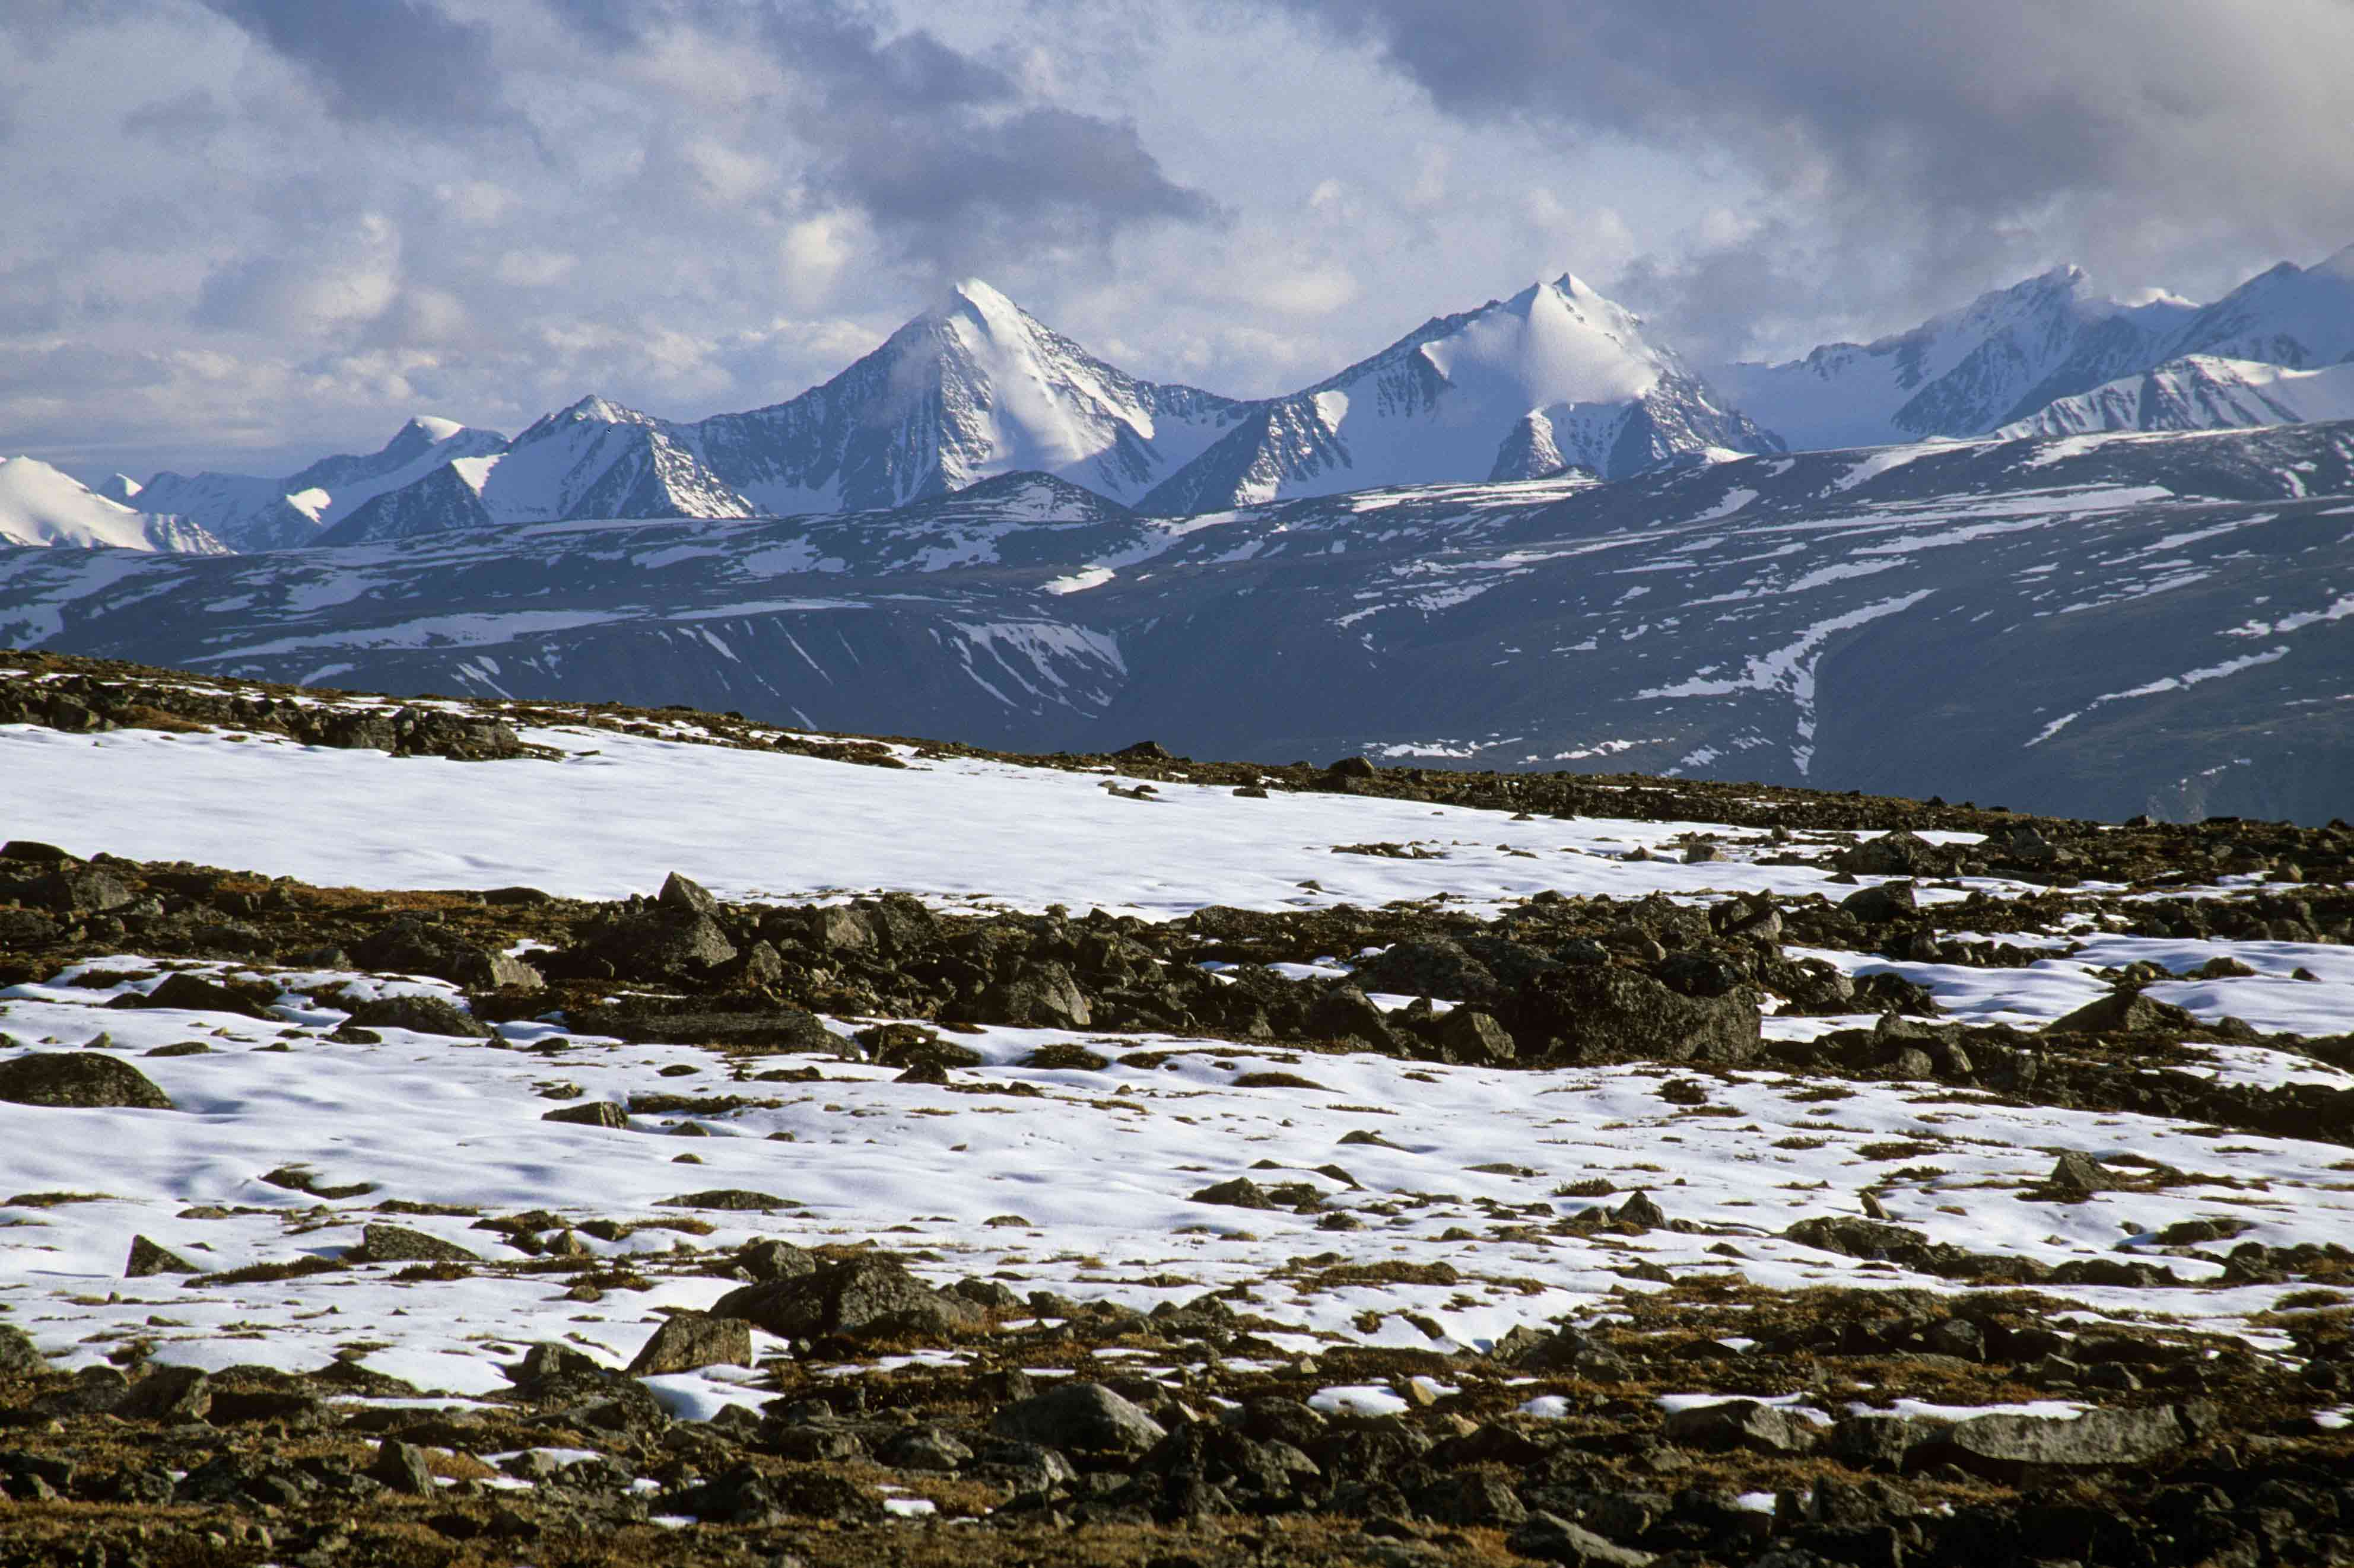 Sream clipart arctic tundra A Pinterest Pin this image